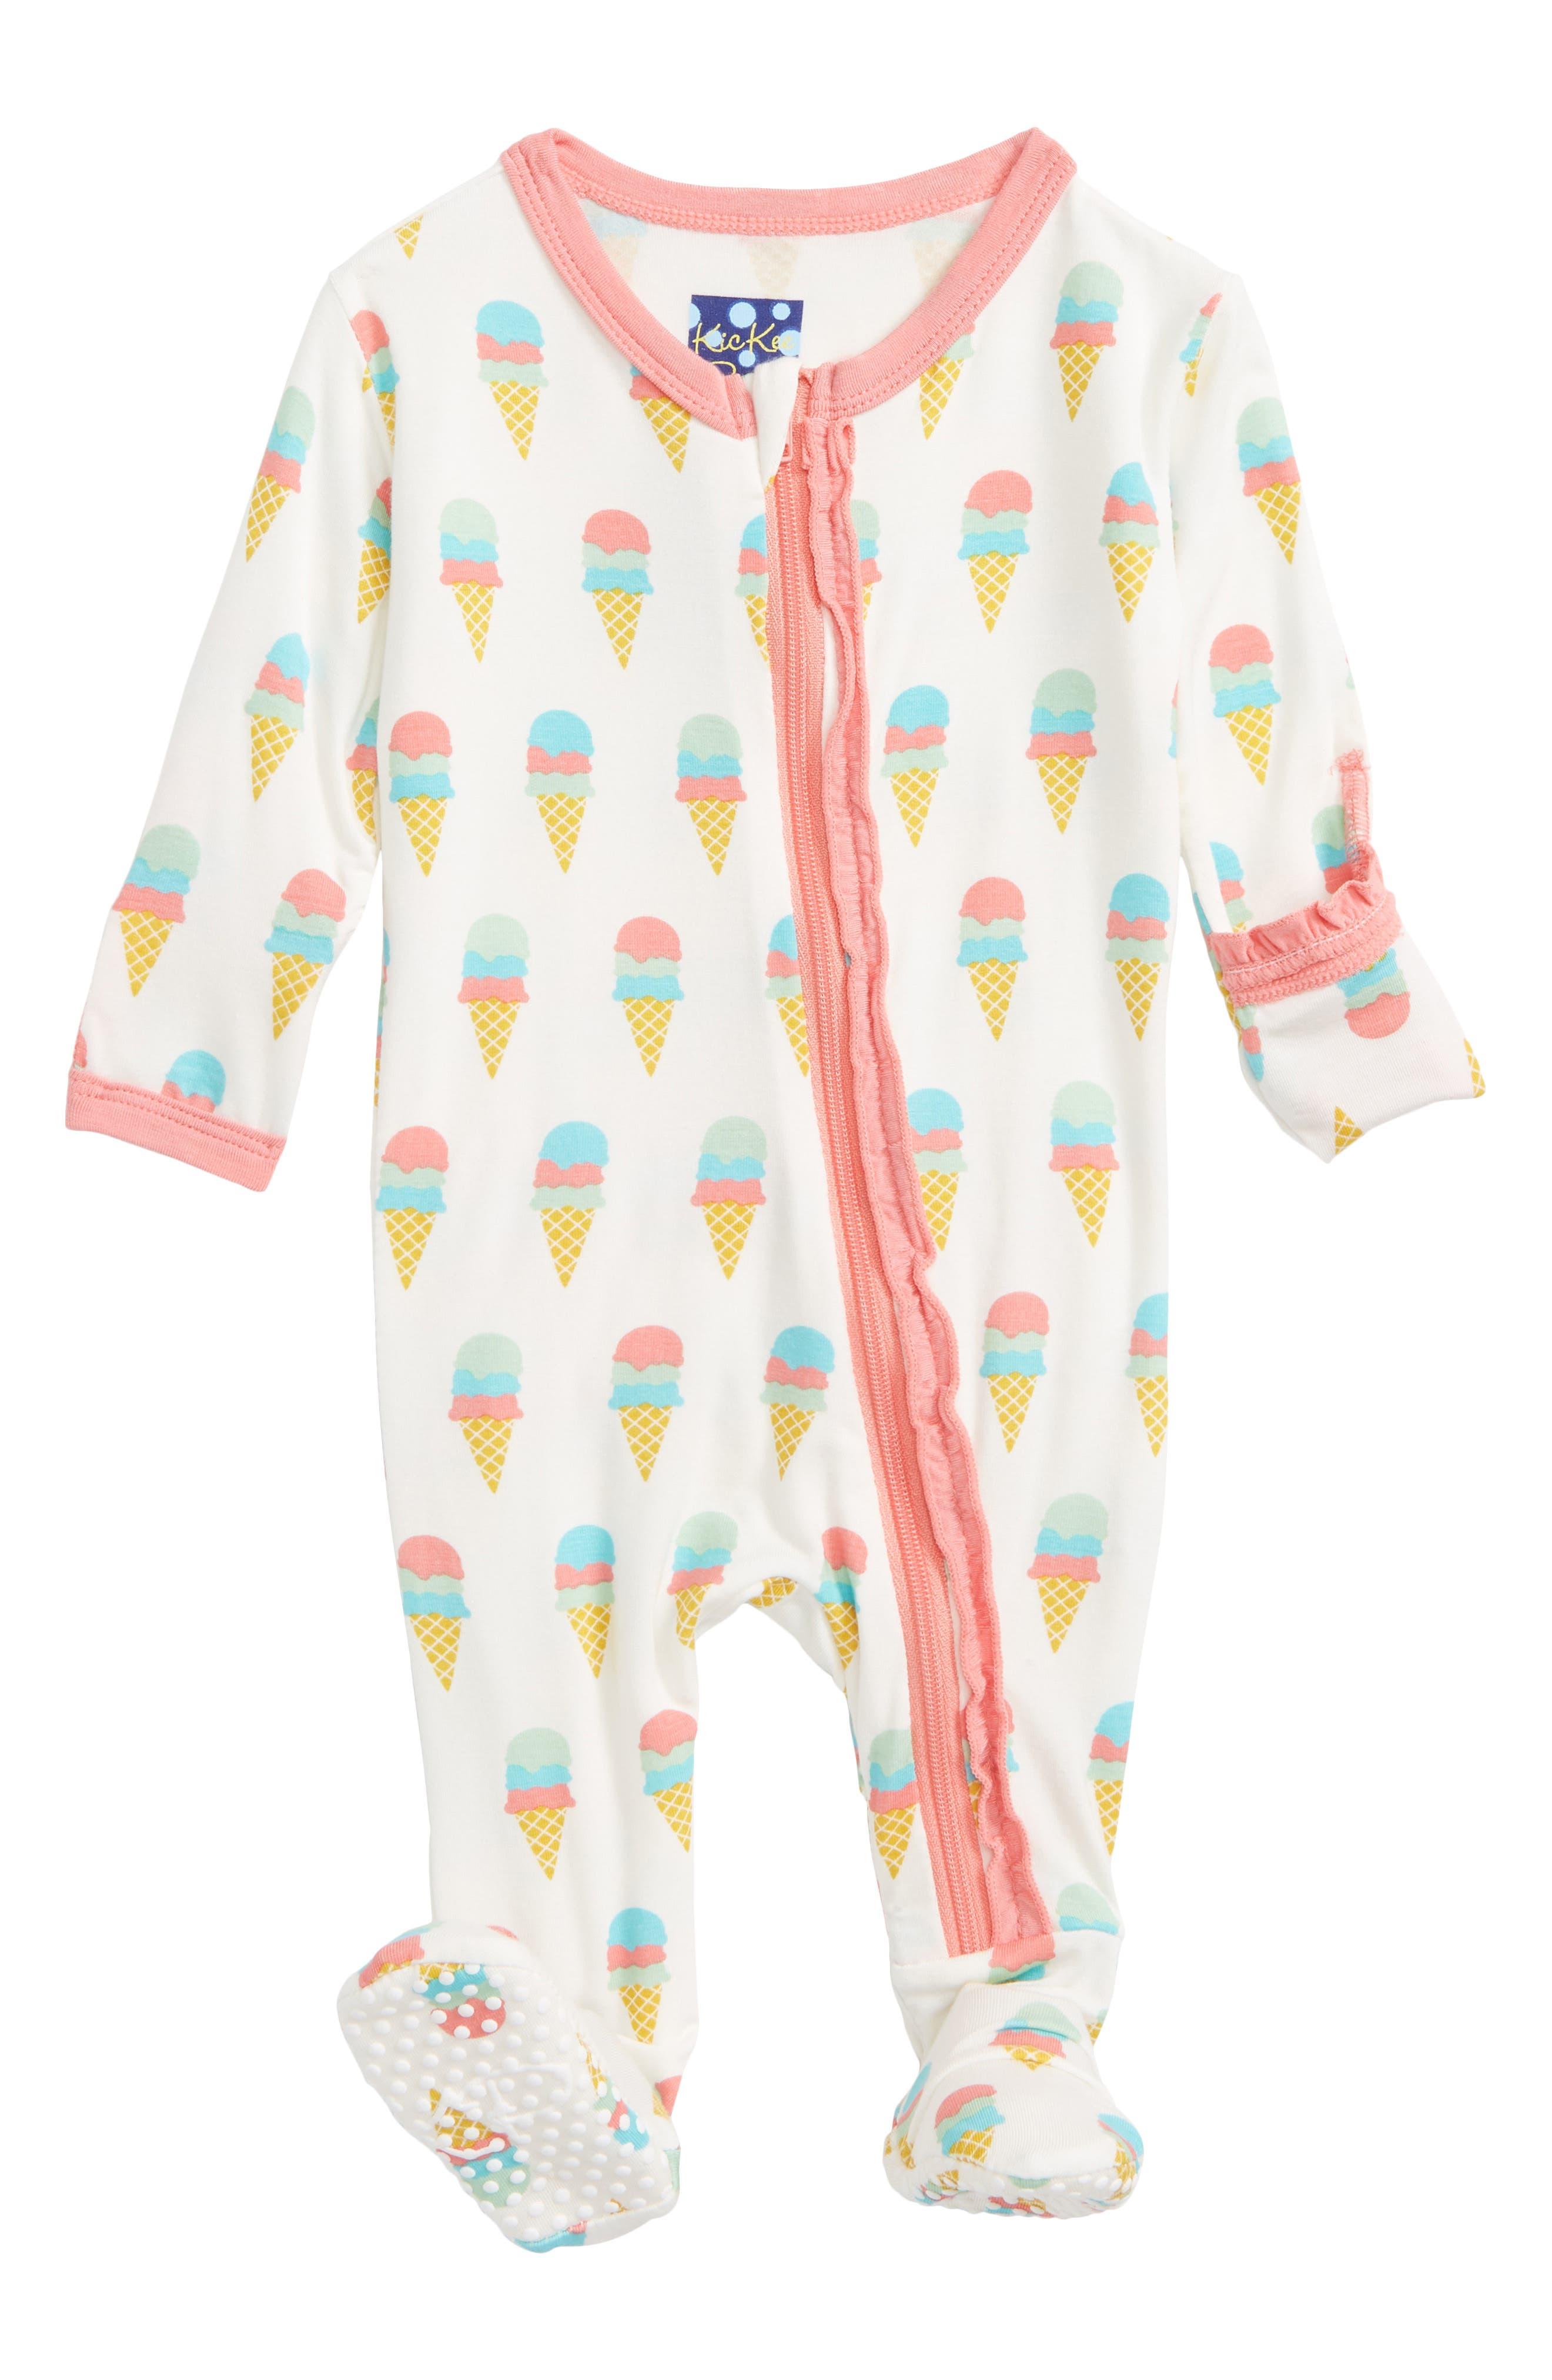 Ruffle Footie,                         Main,                         color, Natural Ice Cream